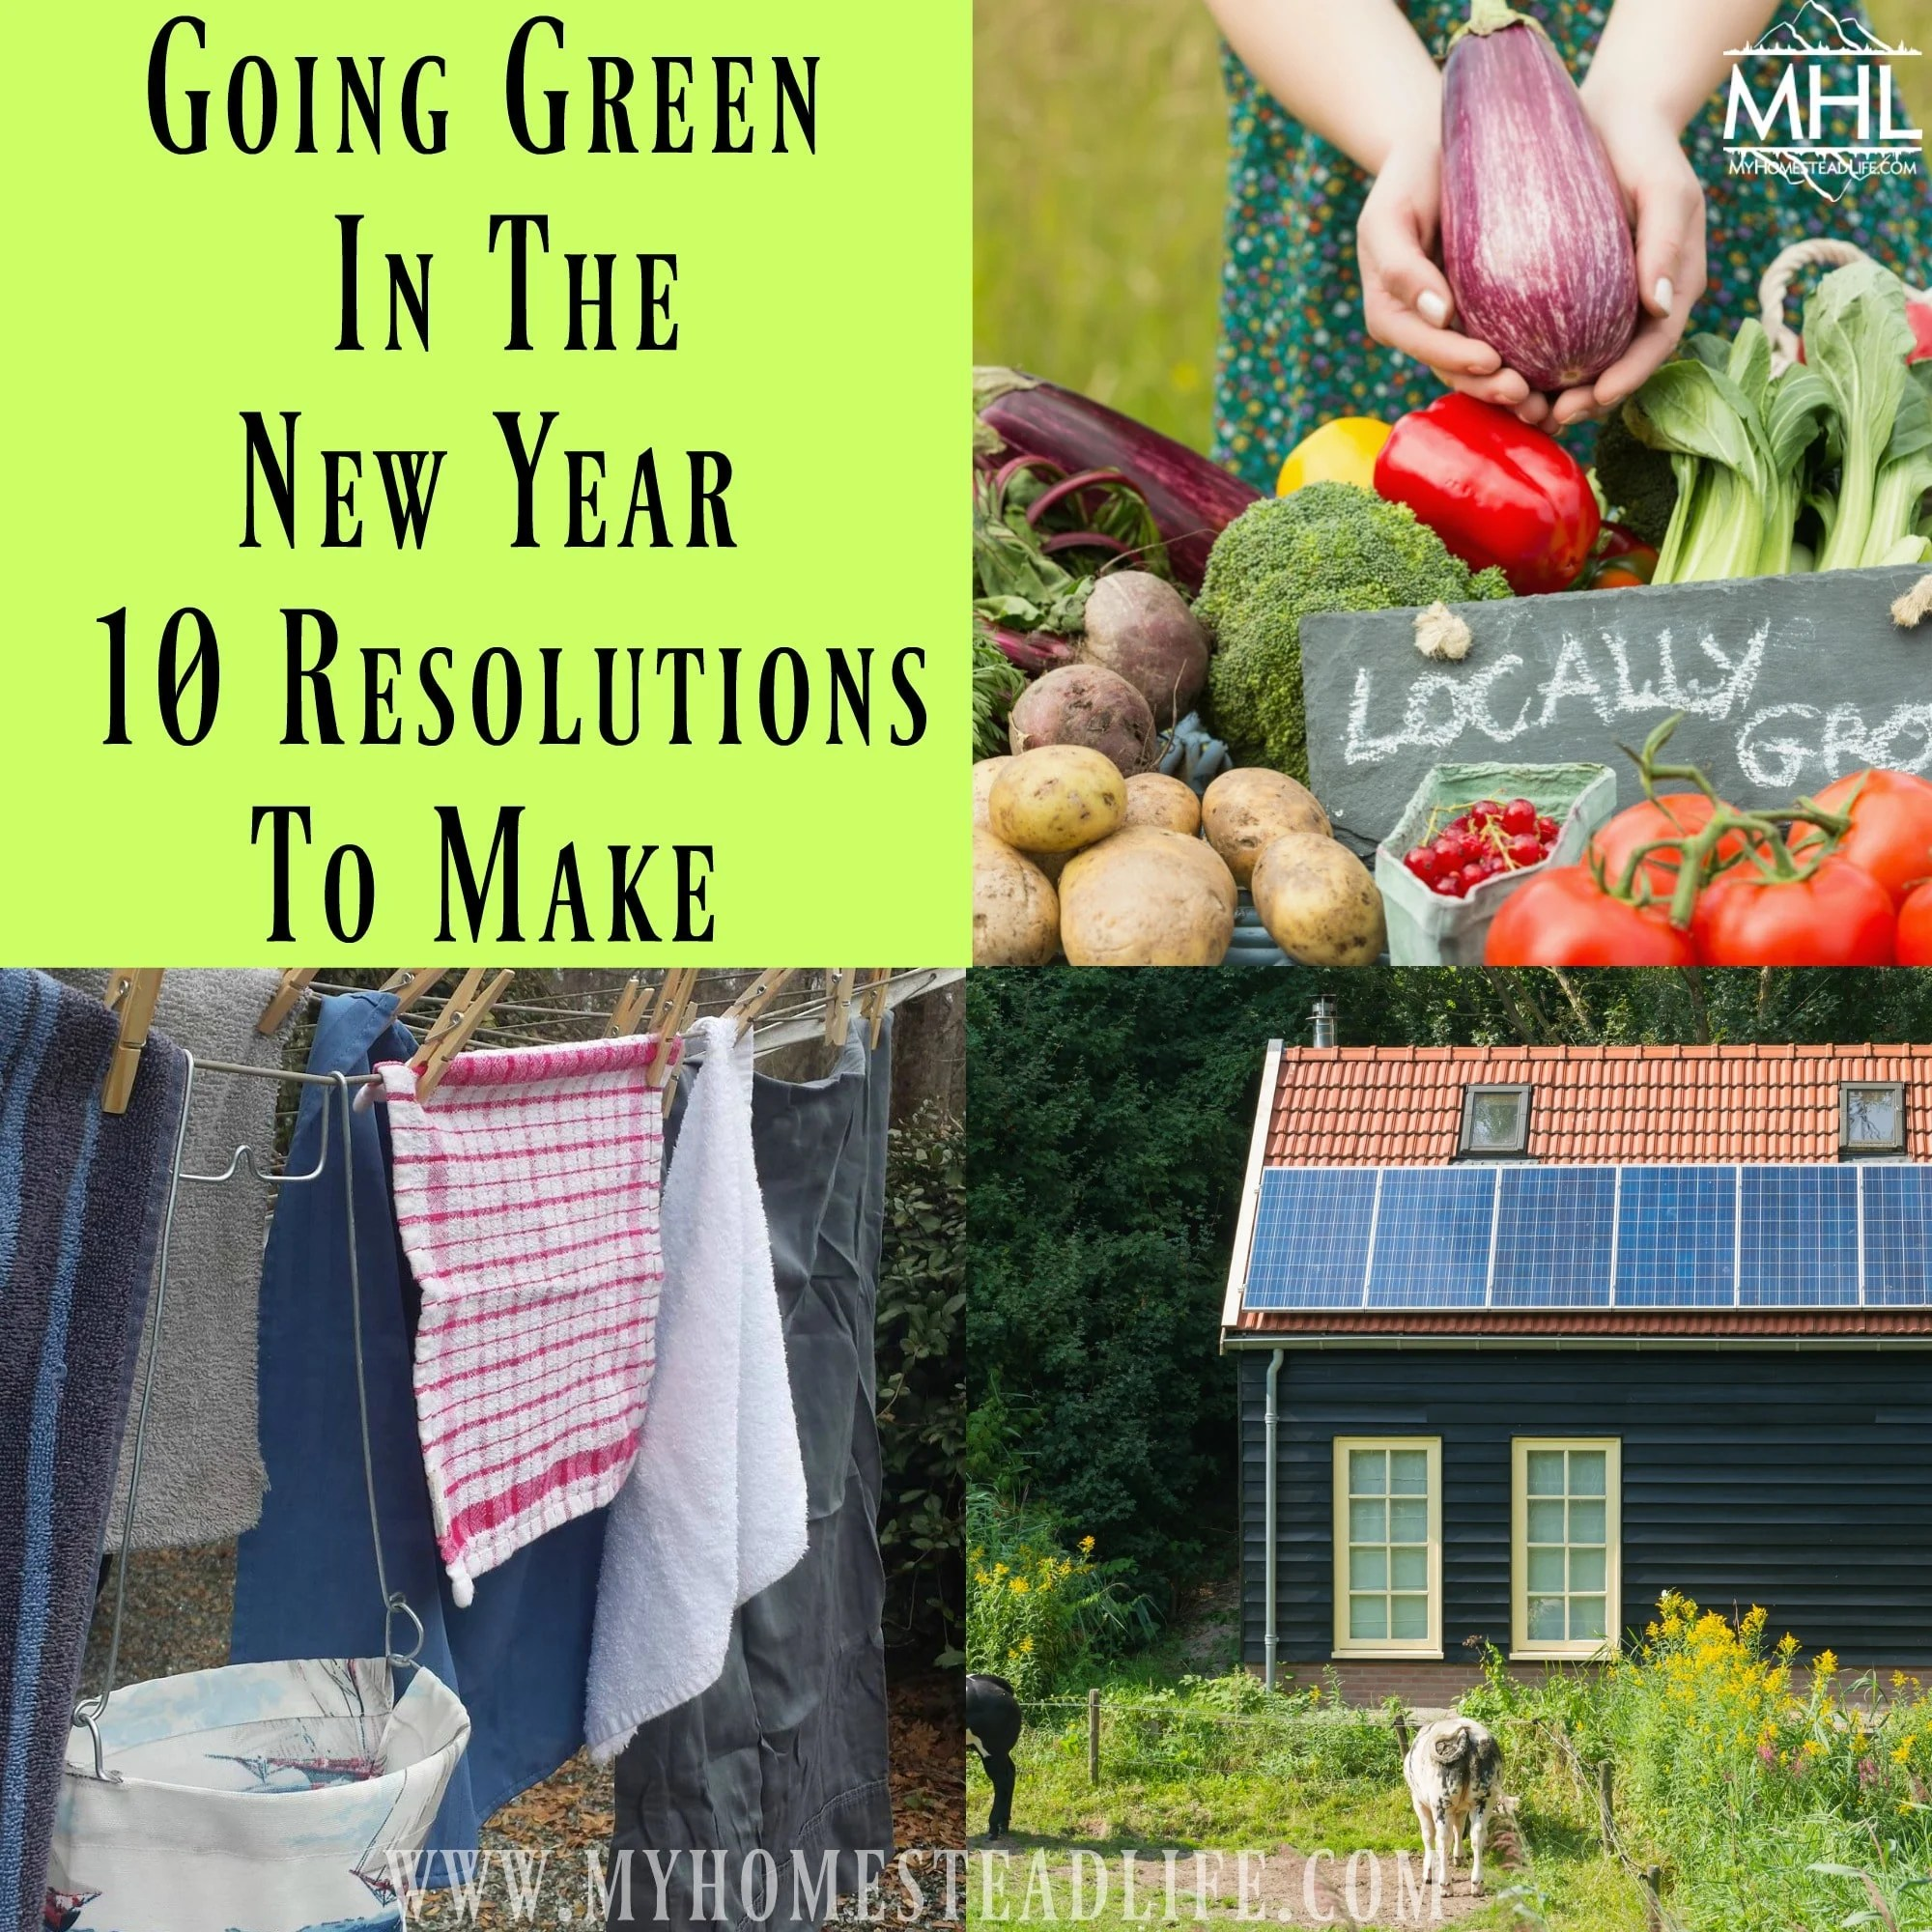 Going Green In The New Year- 10 Resolutions To Make